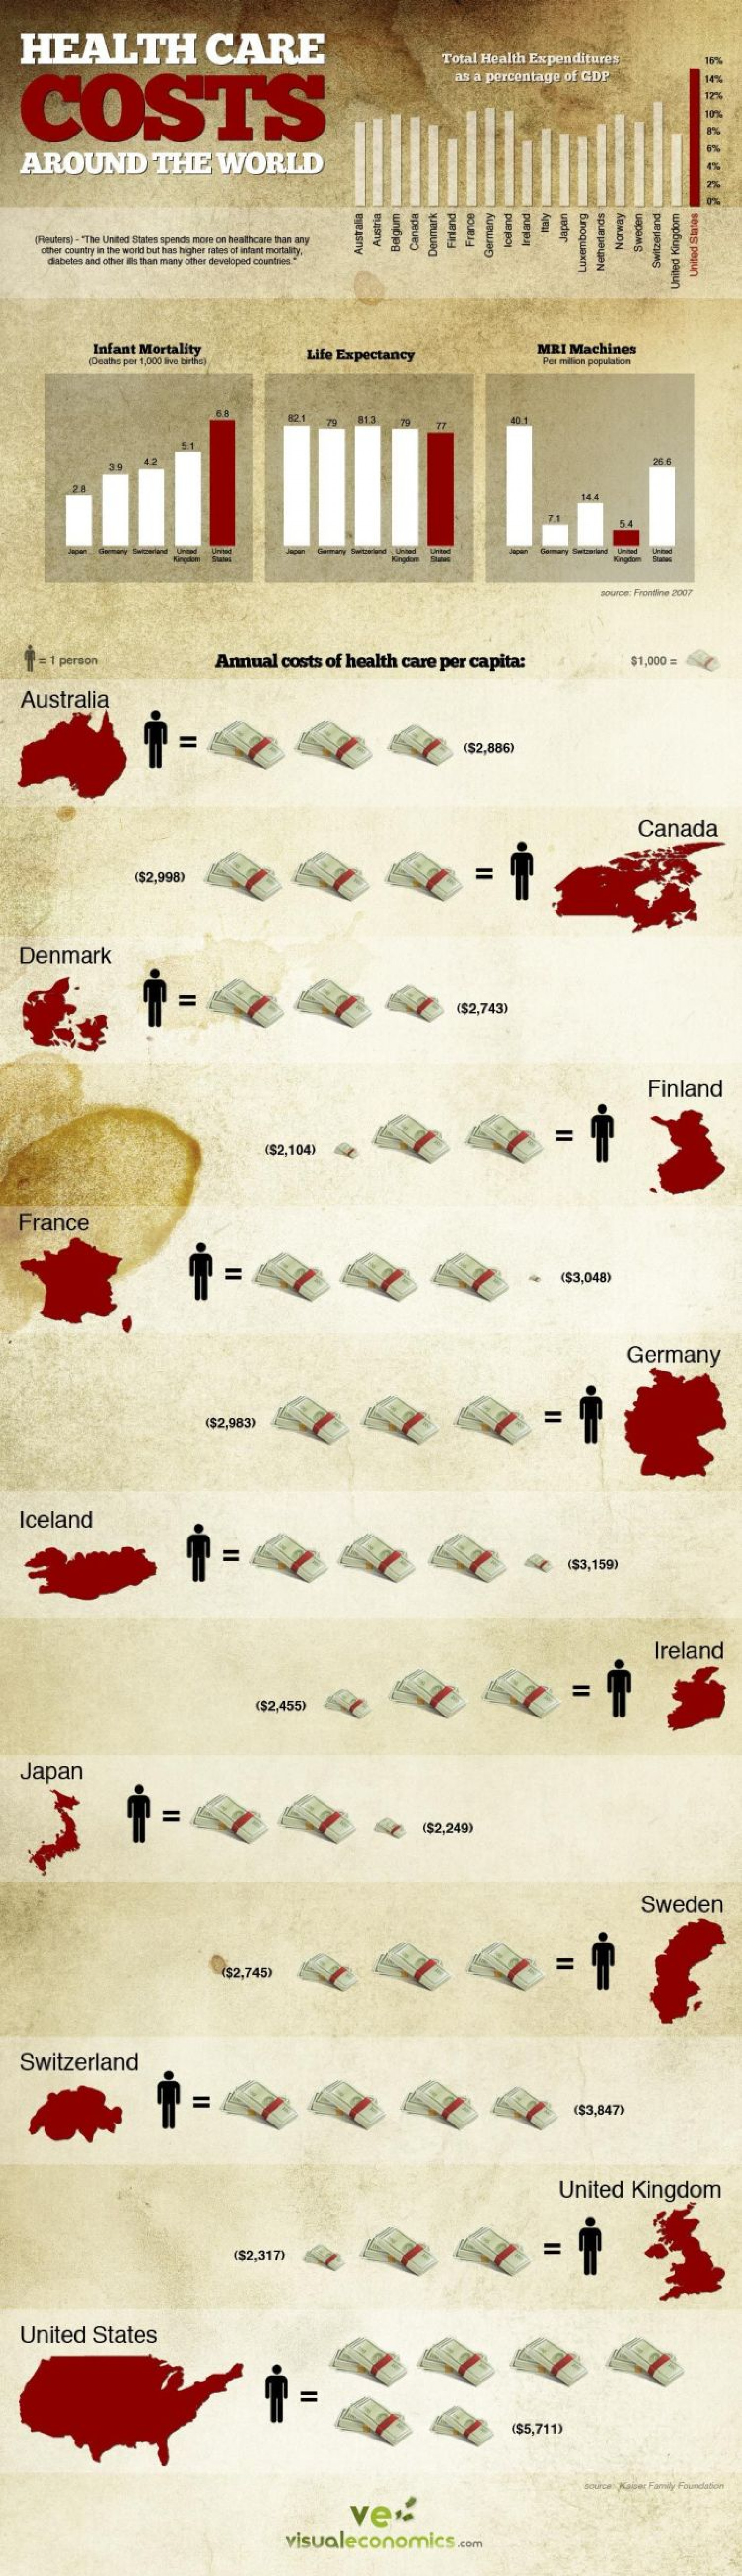 Healthcare Costs Around the World Infographic